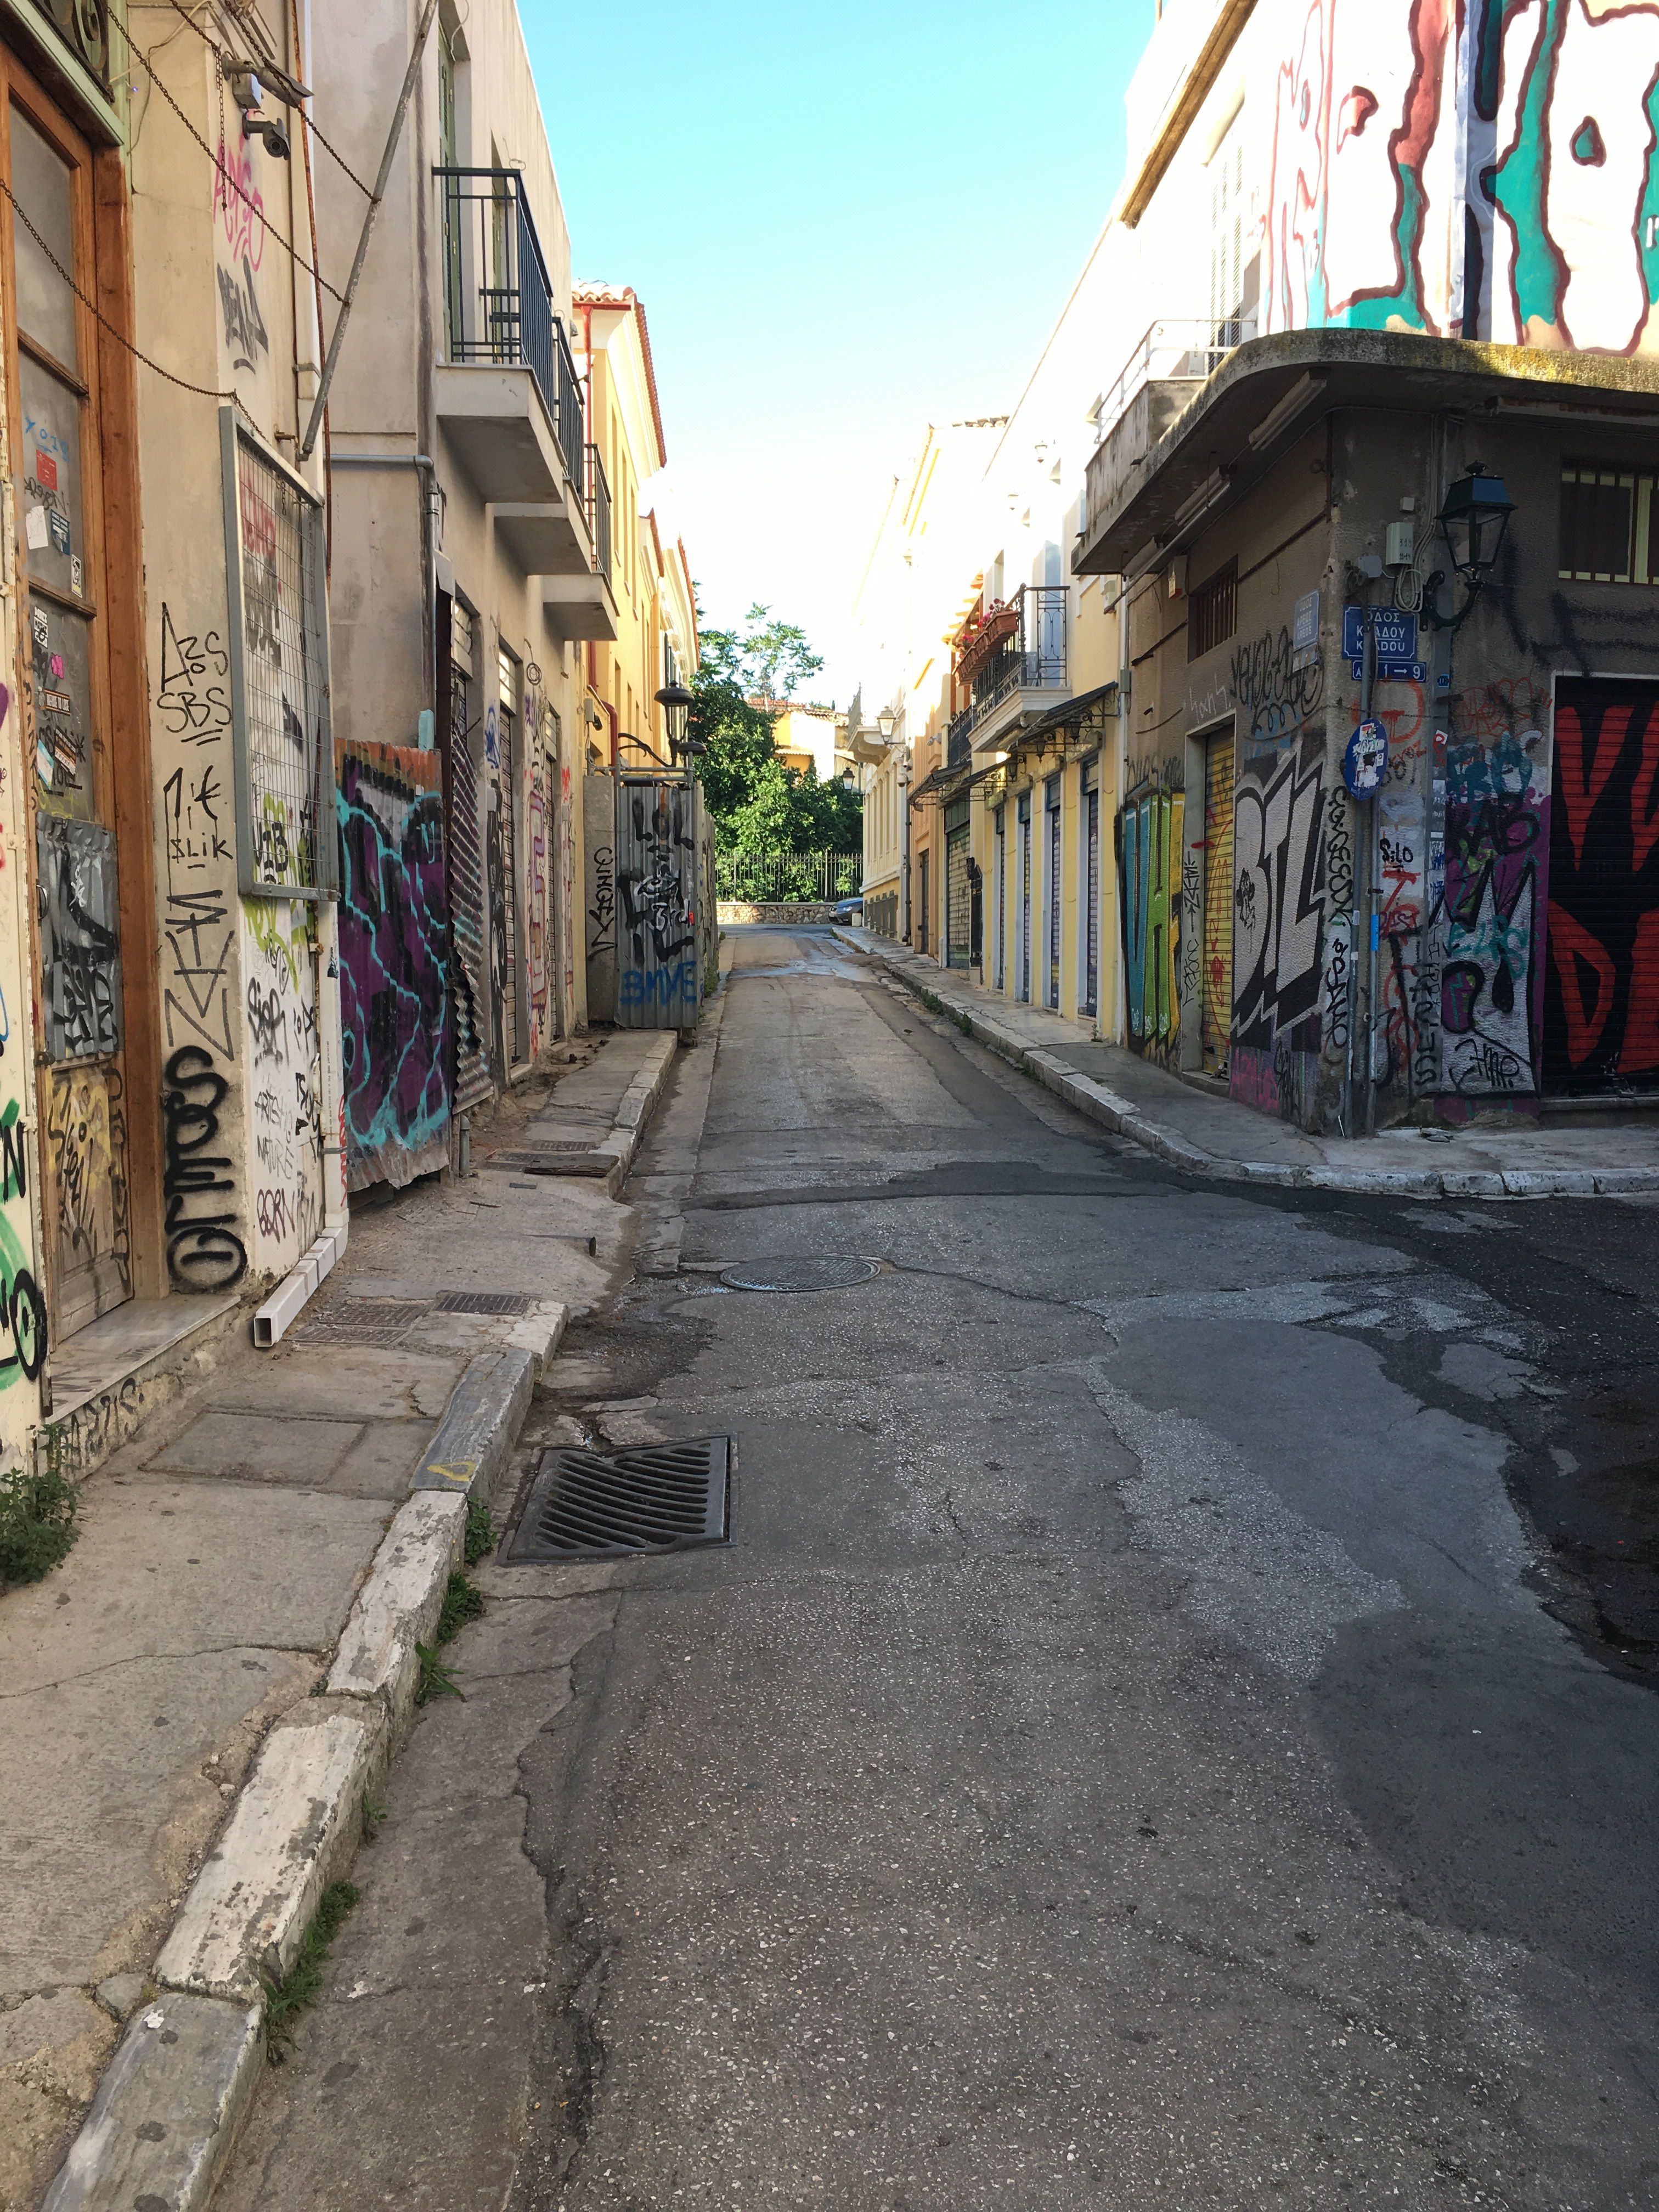 A side street in Athens, Greece. BROWNELL, May 2019